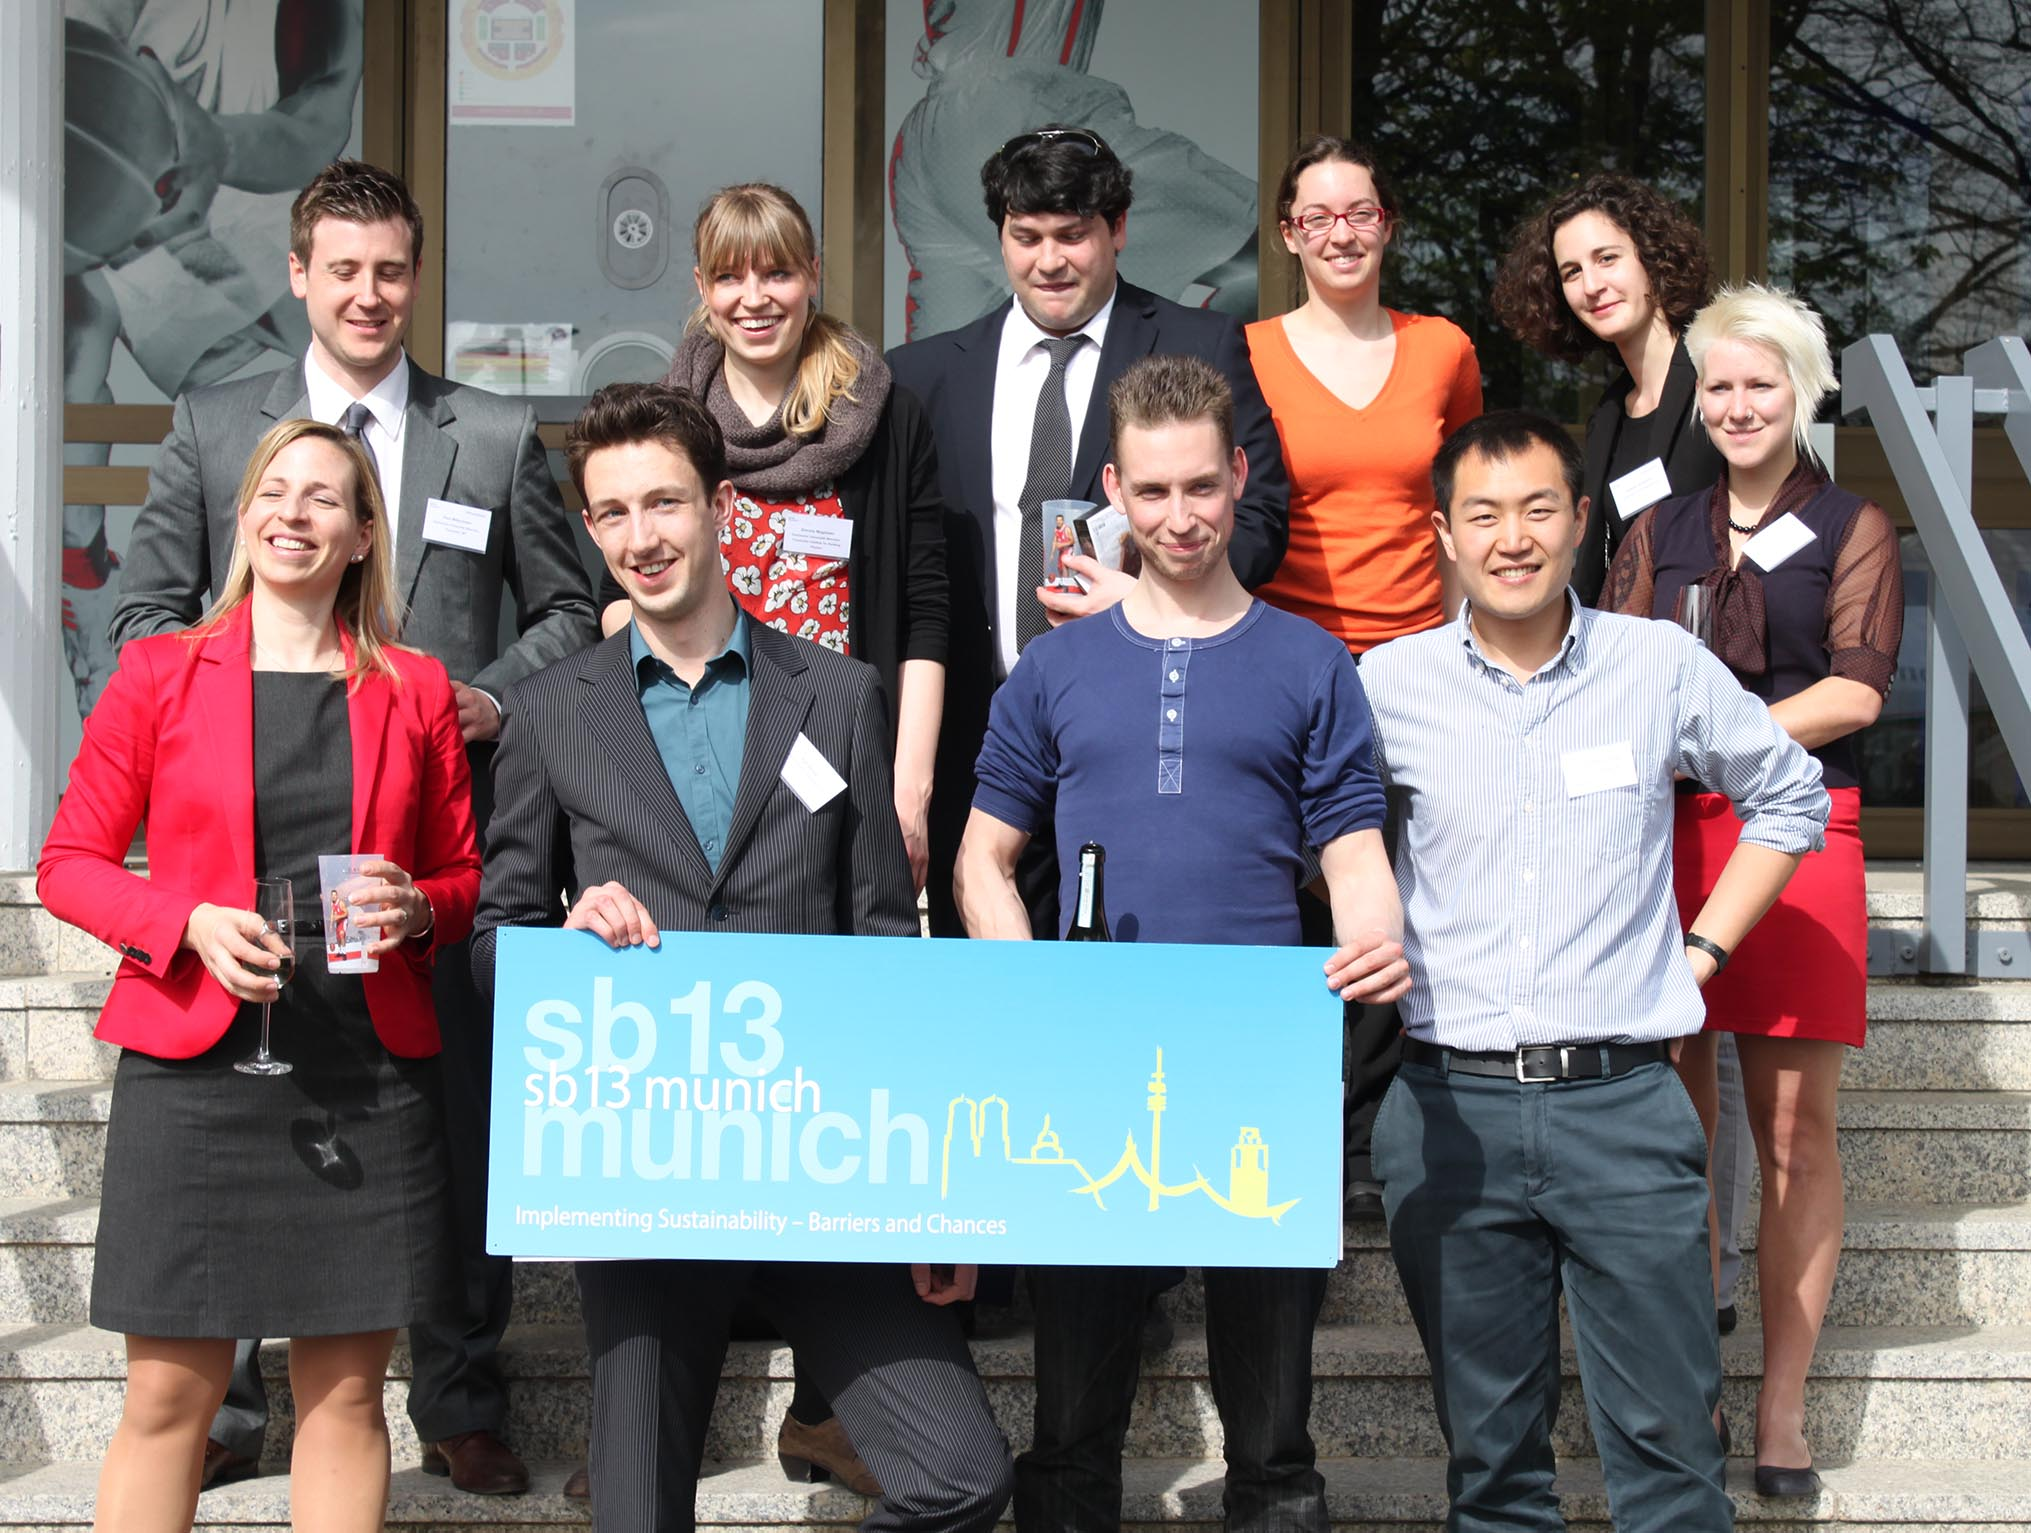 Team DTU at sb13 Munich